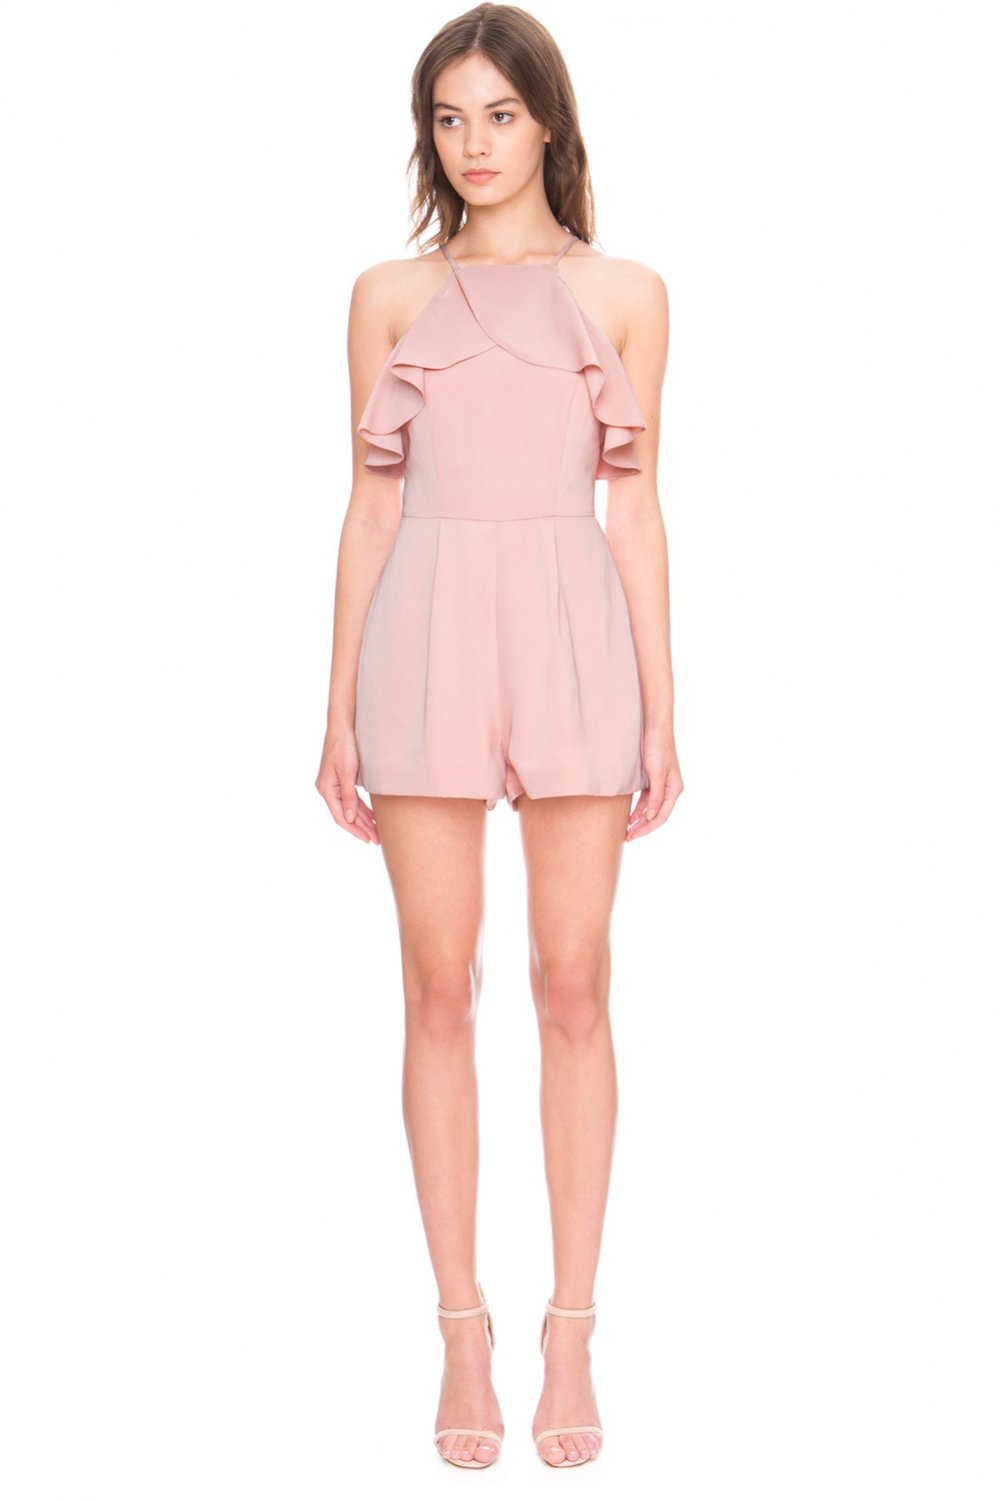 Shop Keepsake Much More Playsuit.